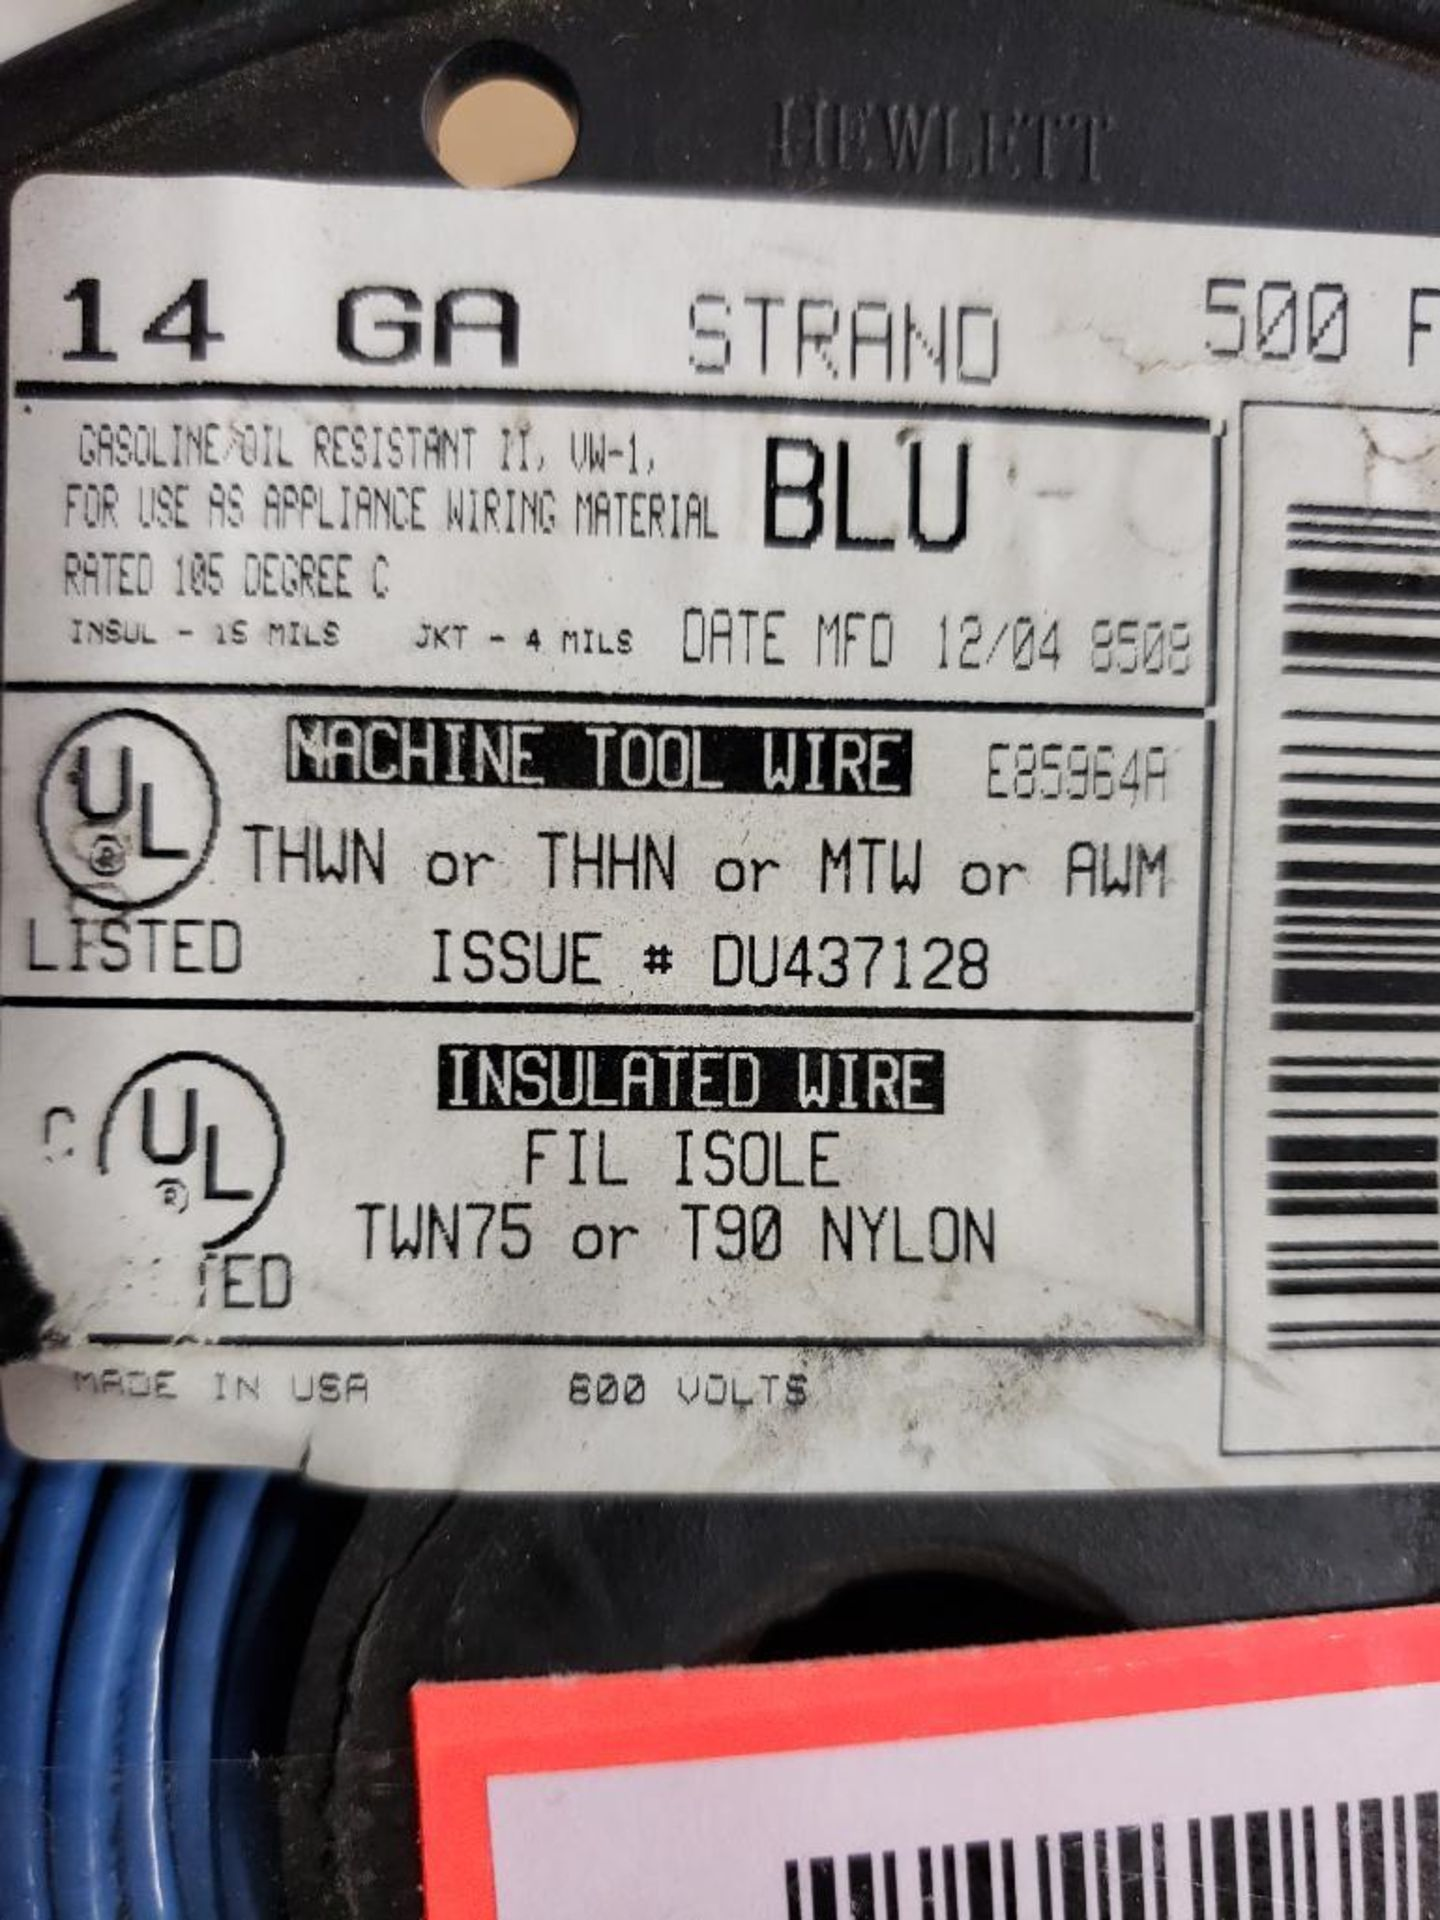 Qty 2 - Spool of Hewlett contractor wire. 14GA-BLUE. - Image 2 of 3